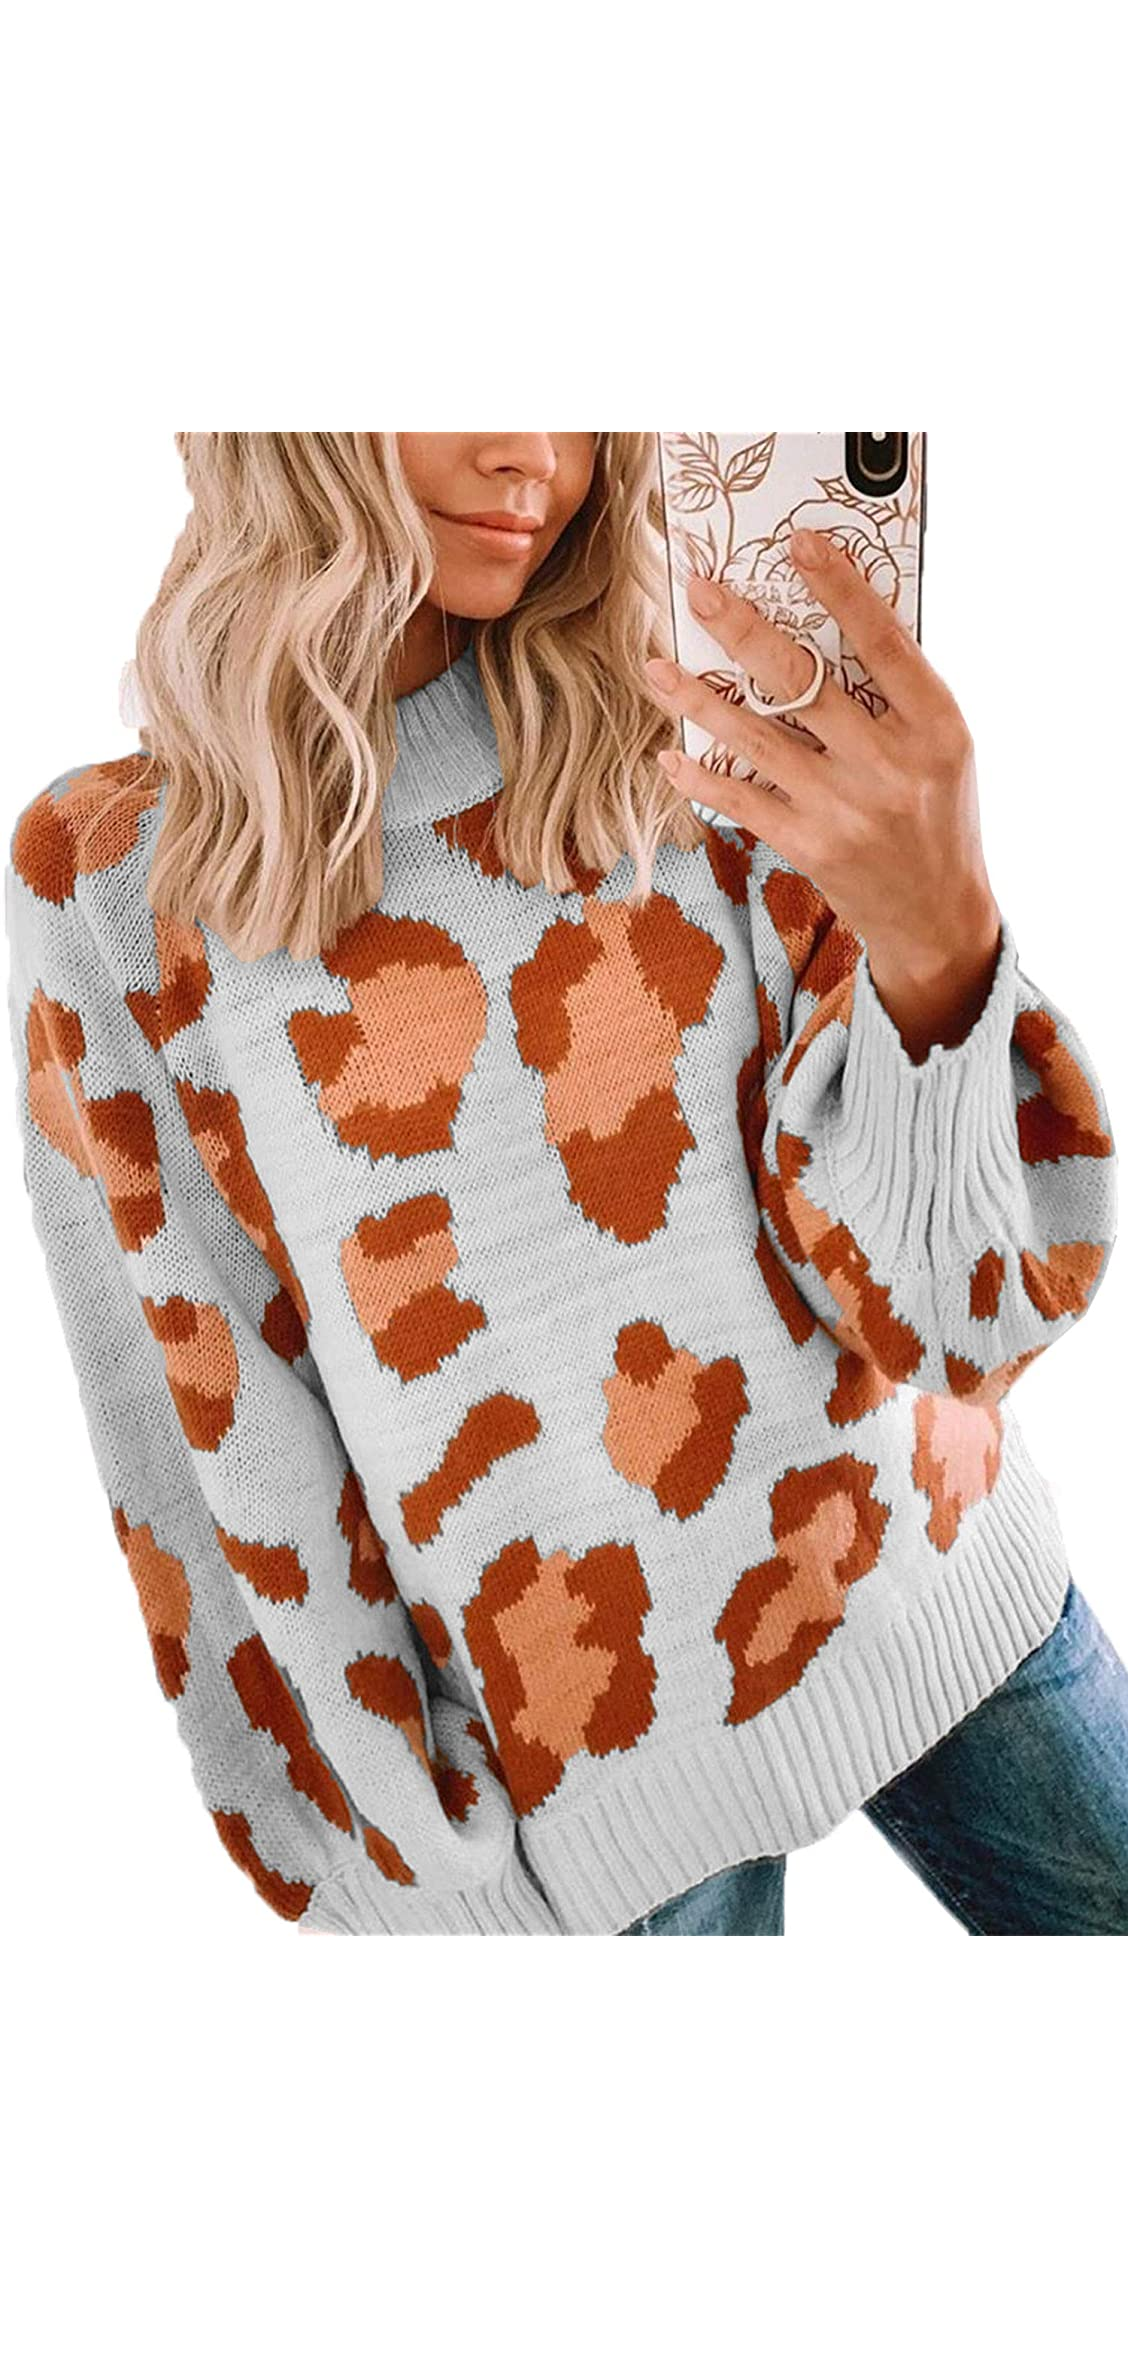 Women's Sweaters Casual Oversized Leopard Printed Crew